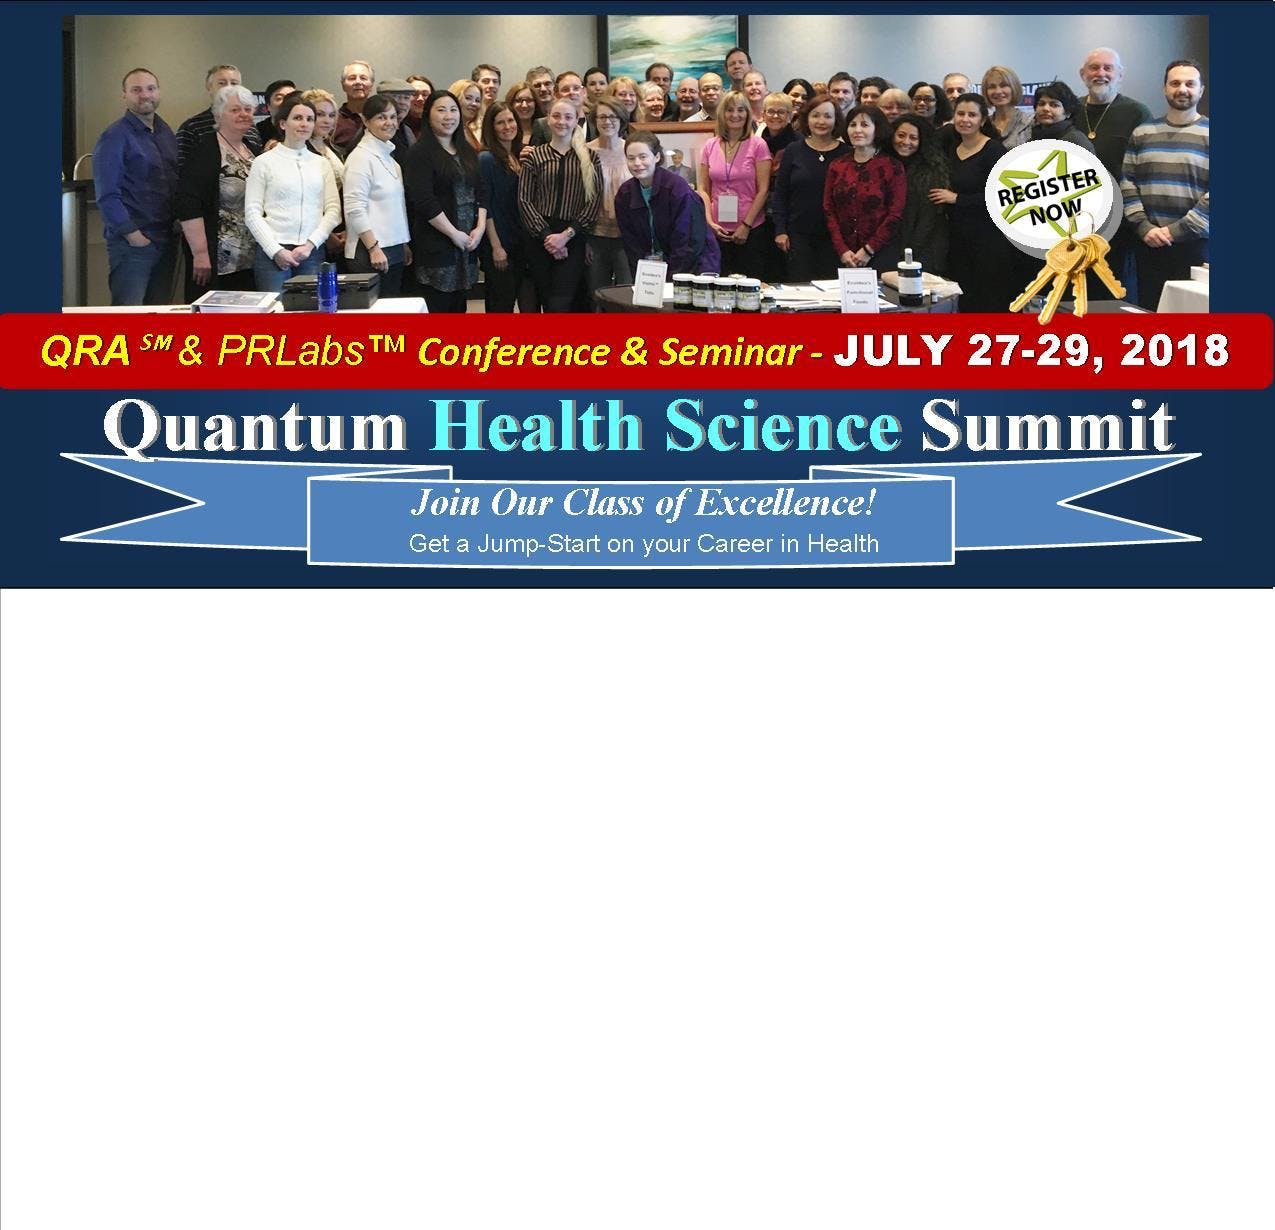 Quantum Health Science Summit Central Ontario